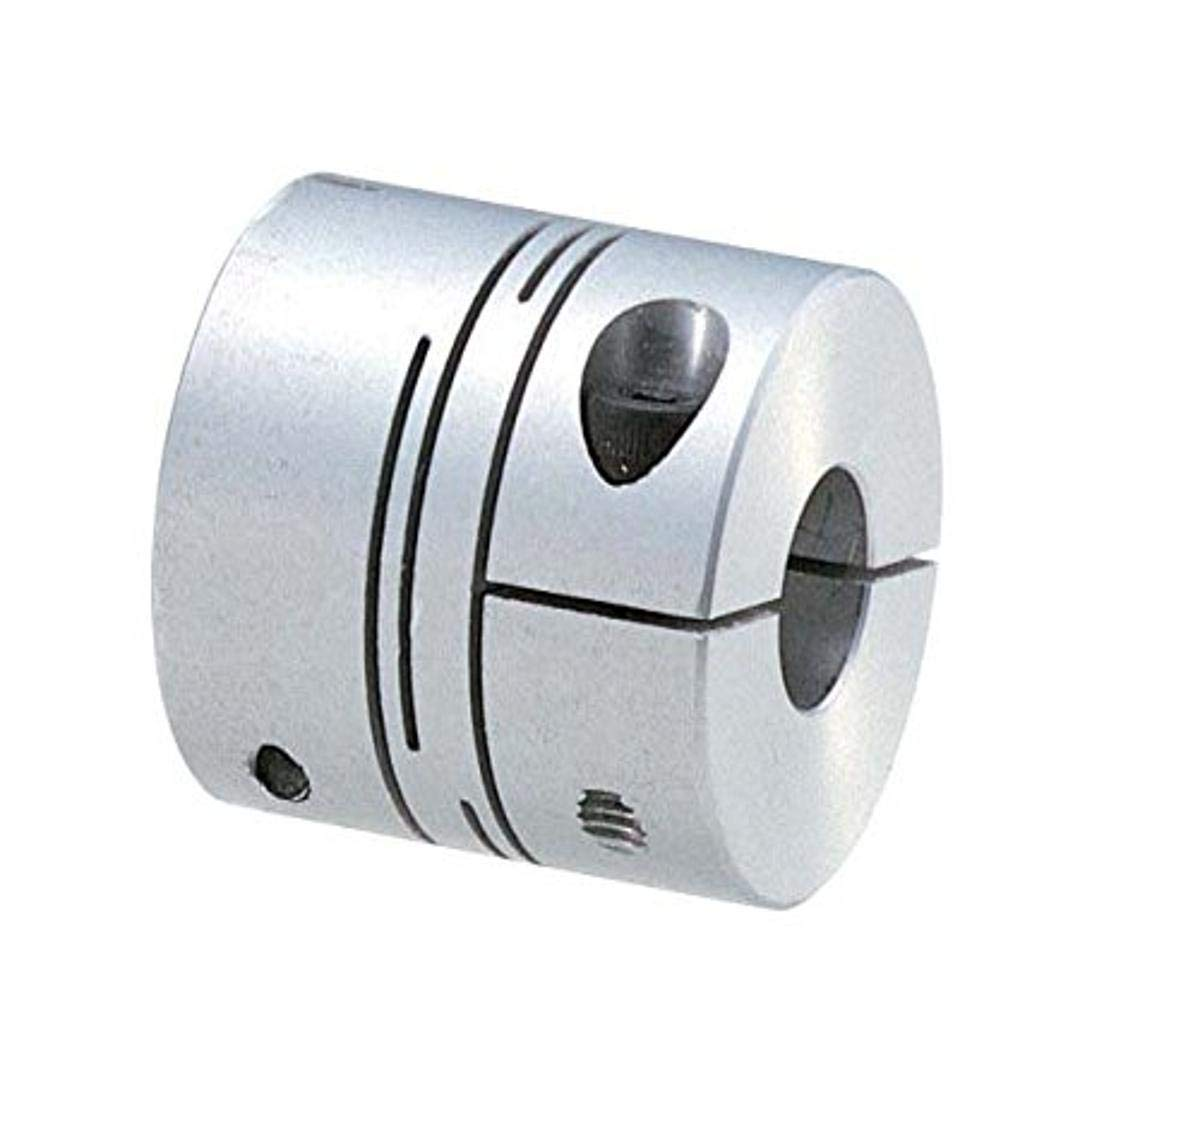 NBK MSXP-36C-15-15 Cleanroom/Vacuum/Heat Resistant Coupling, Slit-Type (PEEK), Clamping Type, Bore Diameters 15 and 15 mm, Polyether Ether Ketone